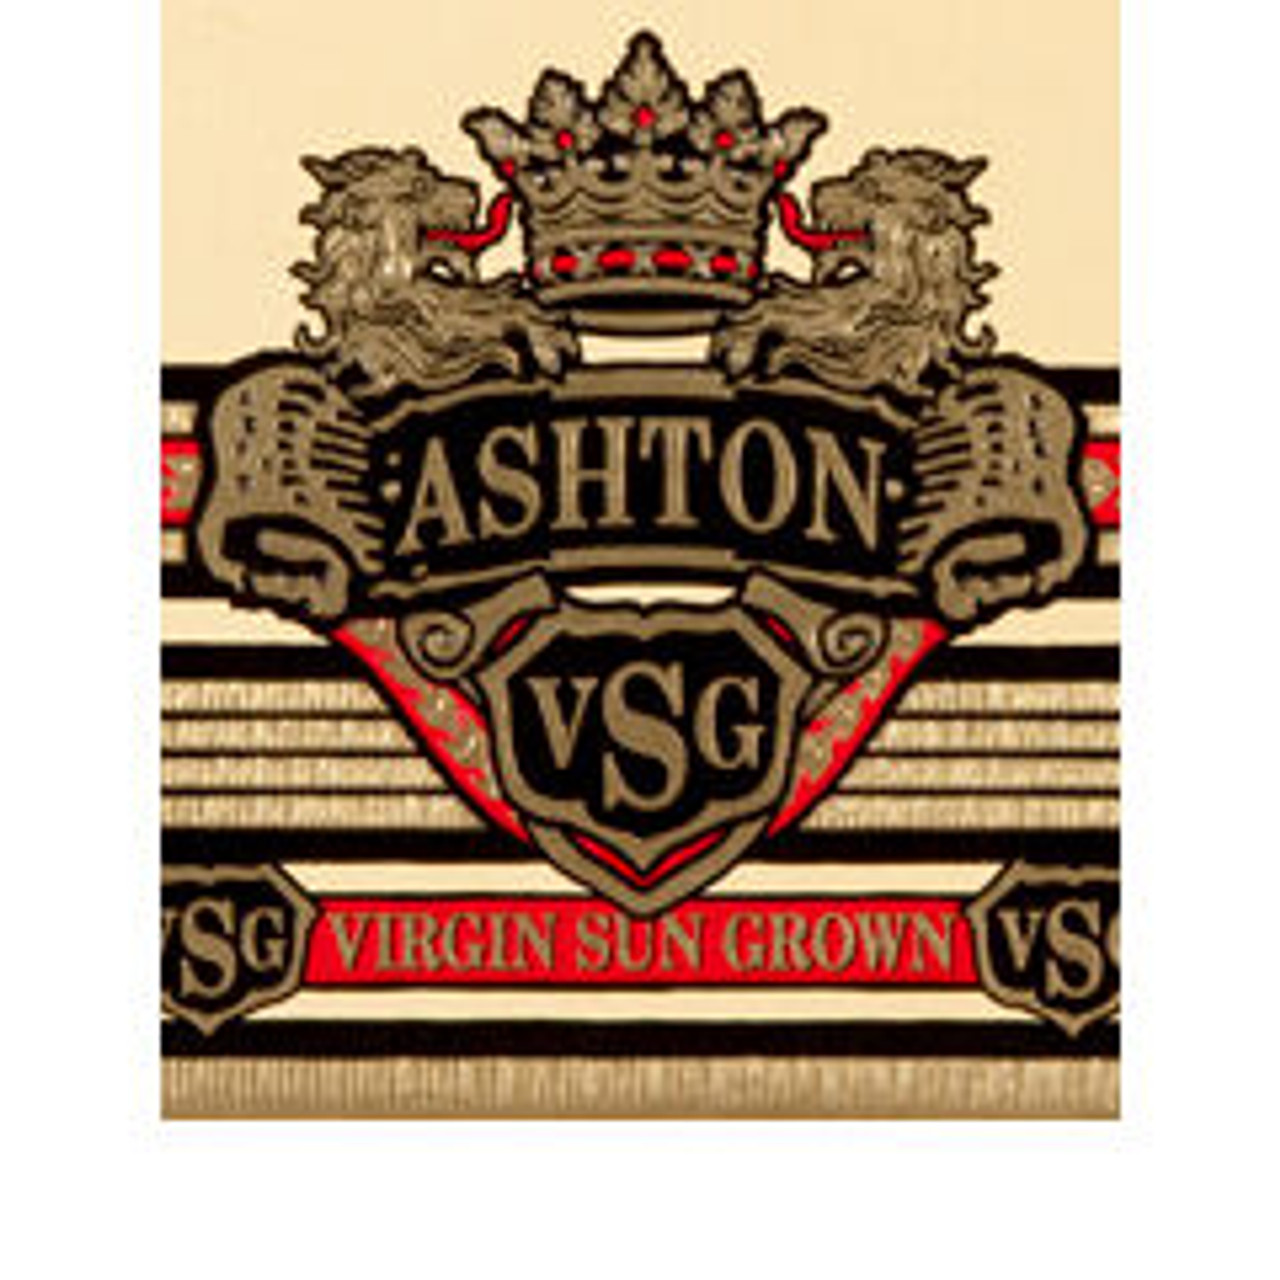 Ashton VSG Eclipse Tube Cigars - 6.0 x 52 (Box of 24)